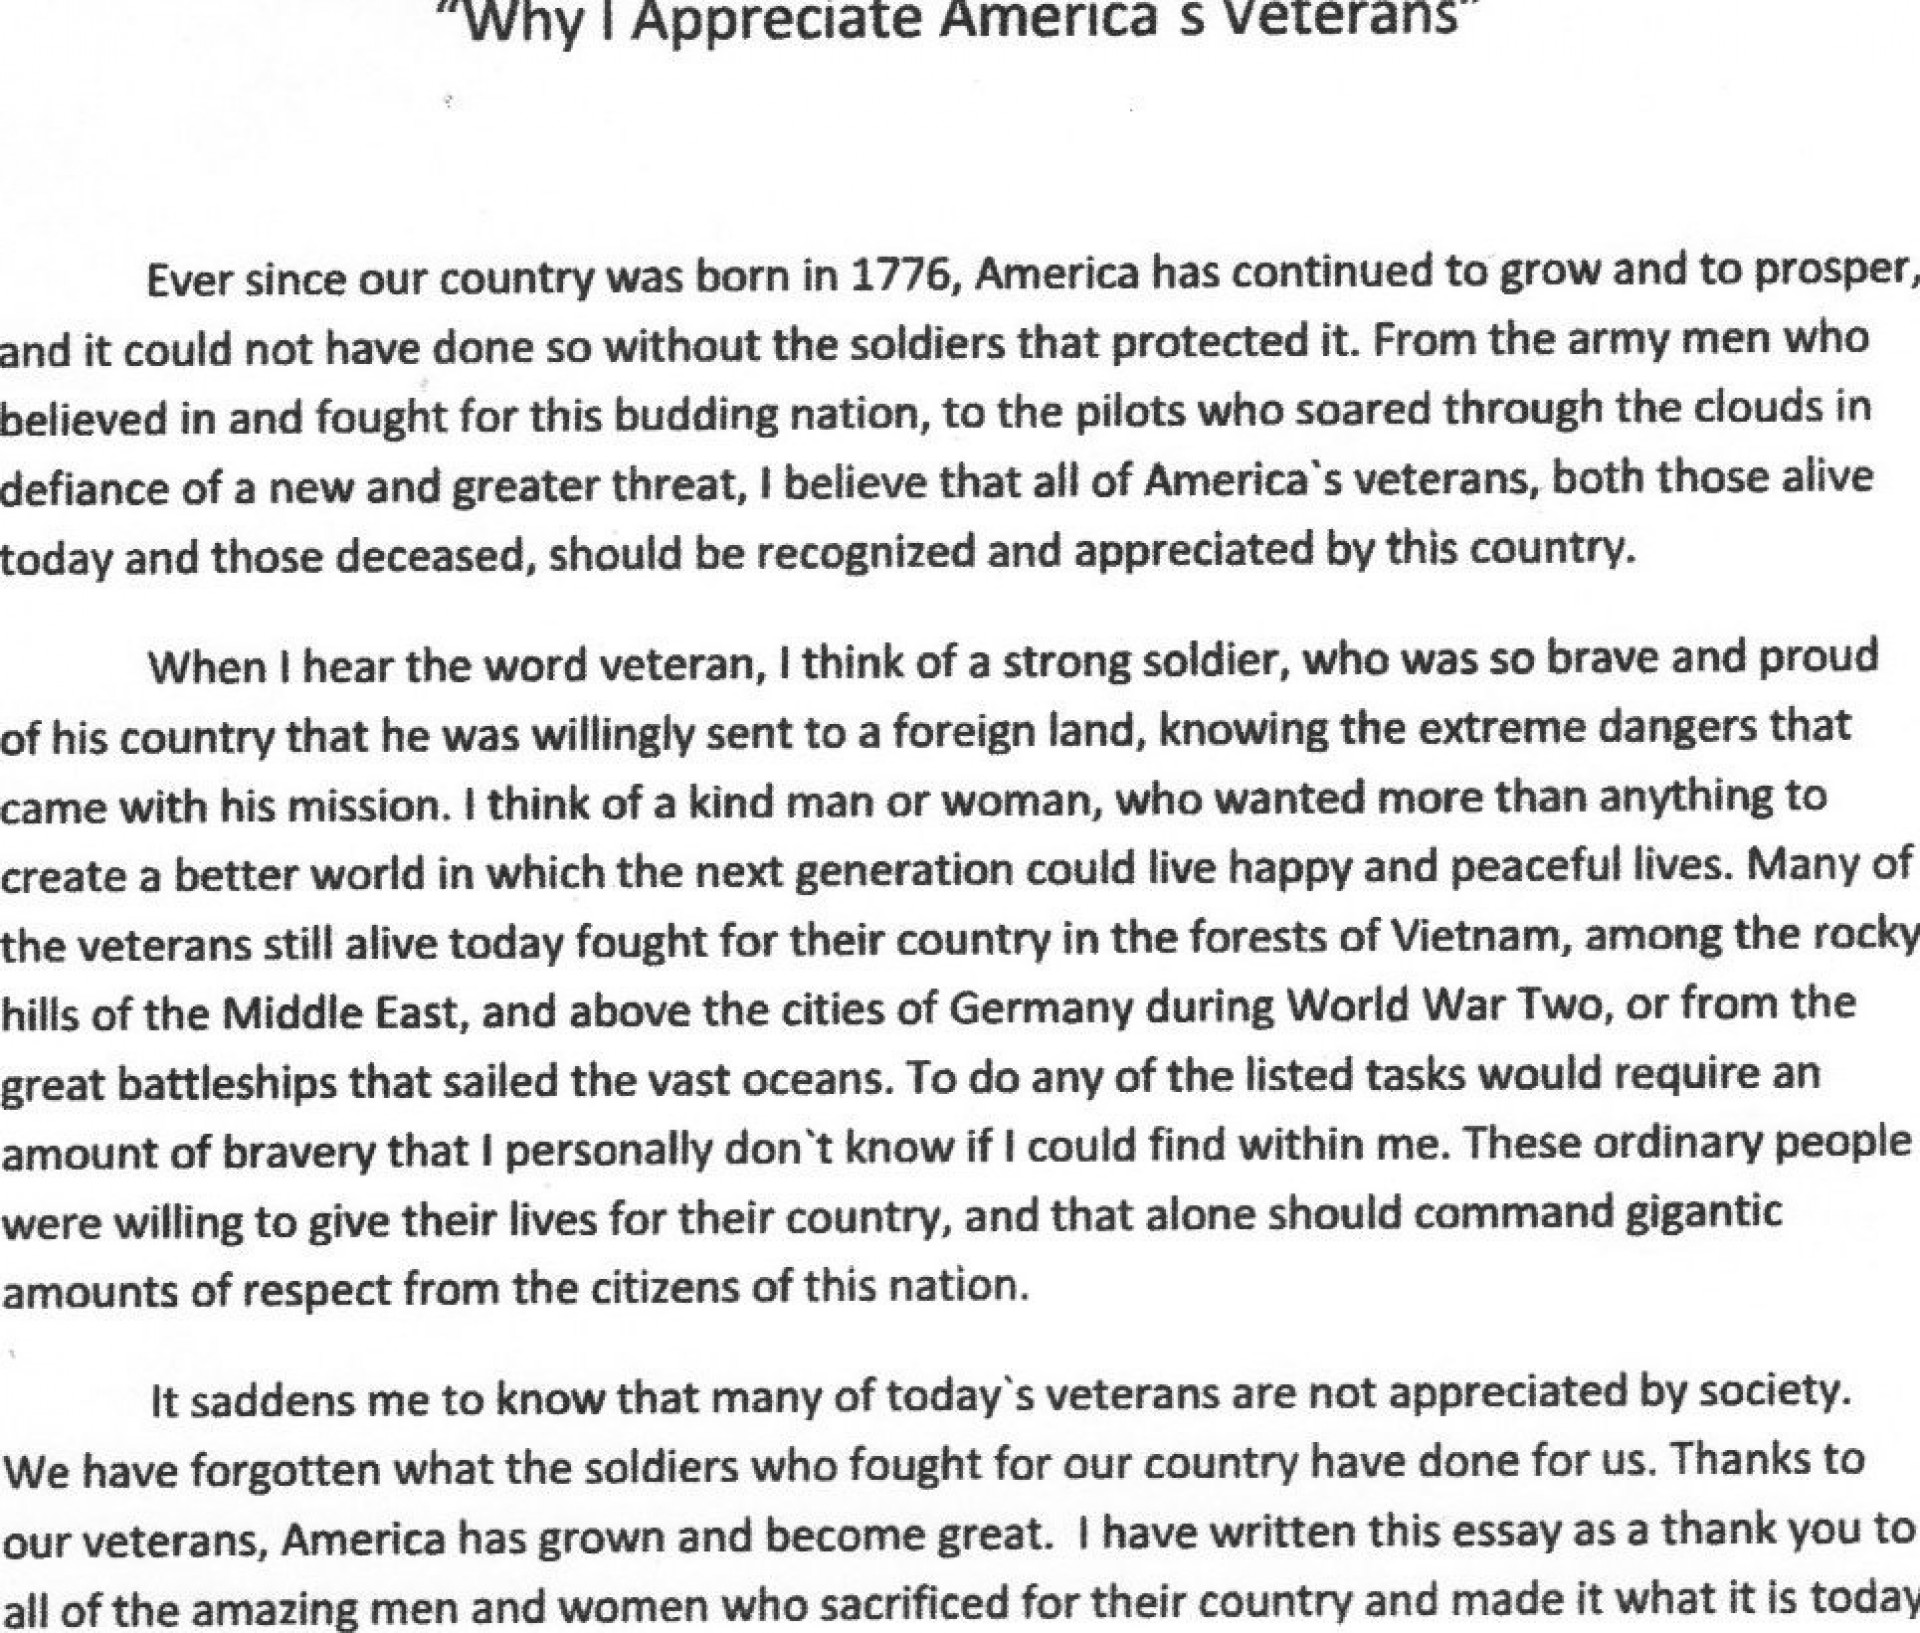 002 Essay Example Patriotism Ideas Time Patriots Pen Patriotic In English Examples Contest Vfw Sample Essays America Questions About India Themes Topics Scholarship Hindi Wondrous For 2nd Year American Legion On Pakistan 1920